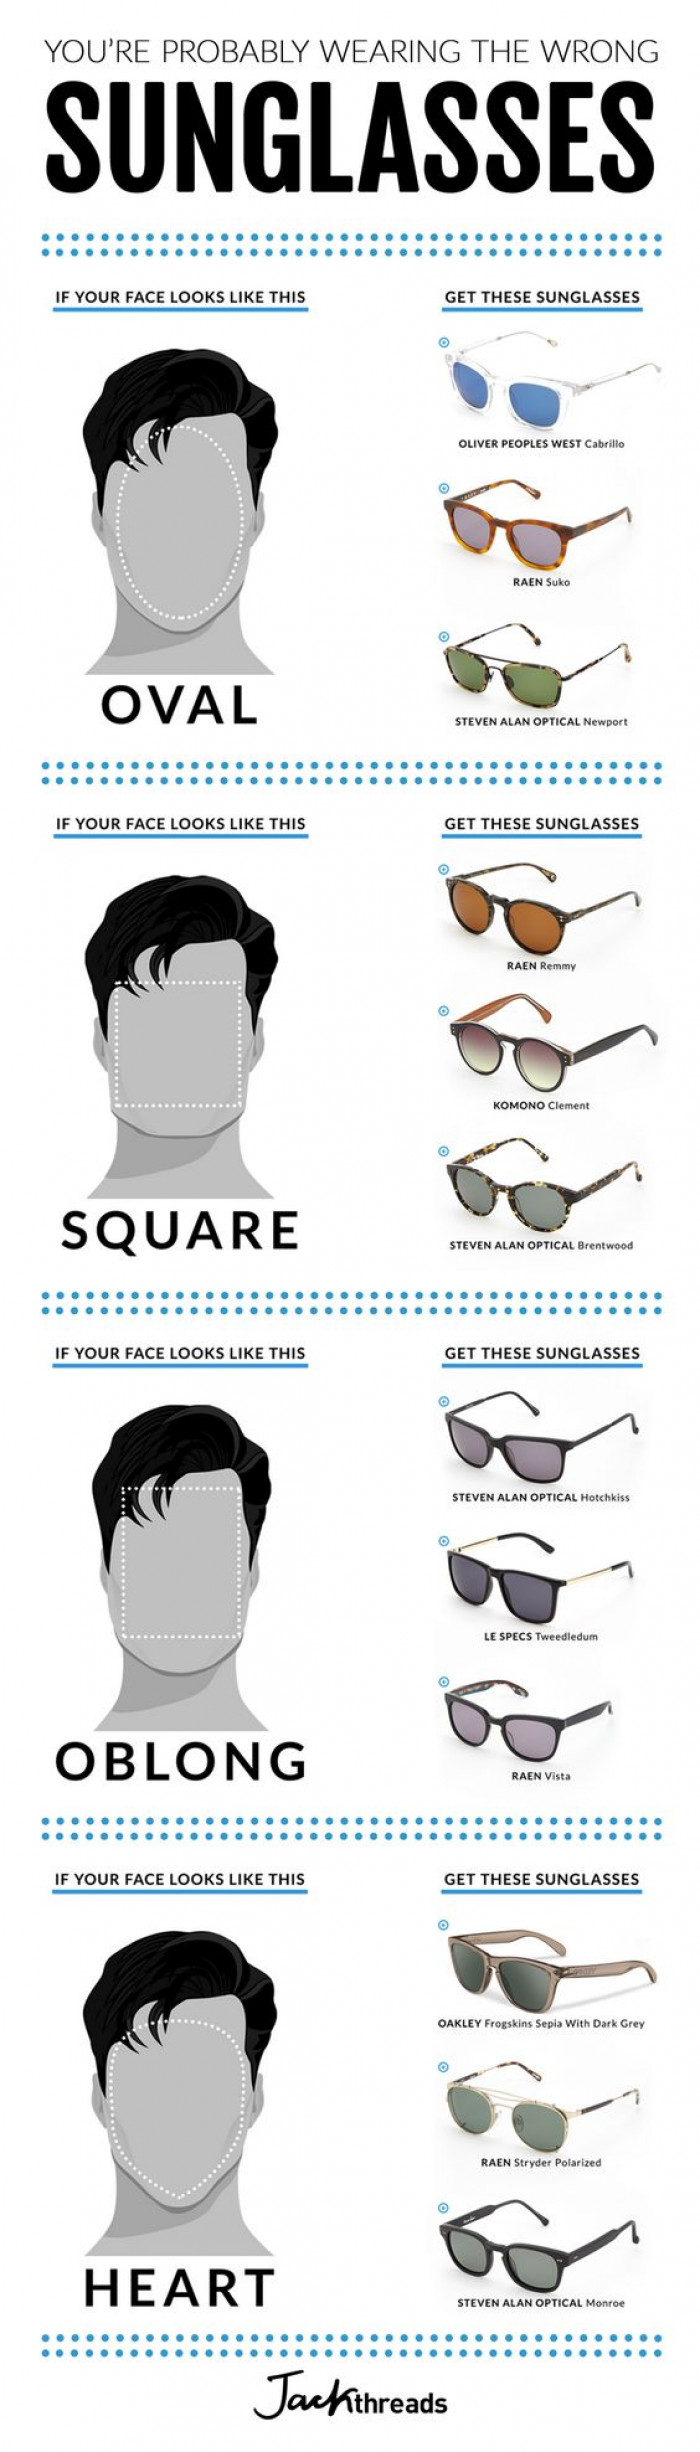 After Seeing This Chart You Will Know Exactly Which Sunglasses To Wear